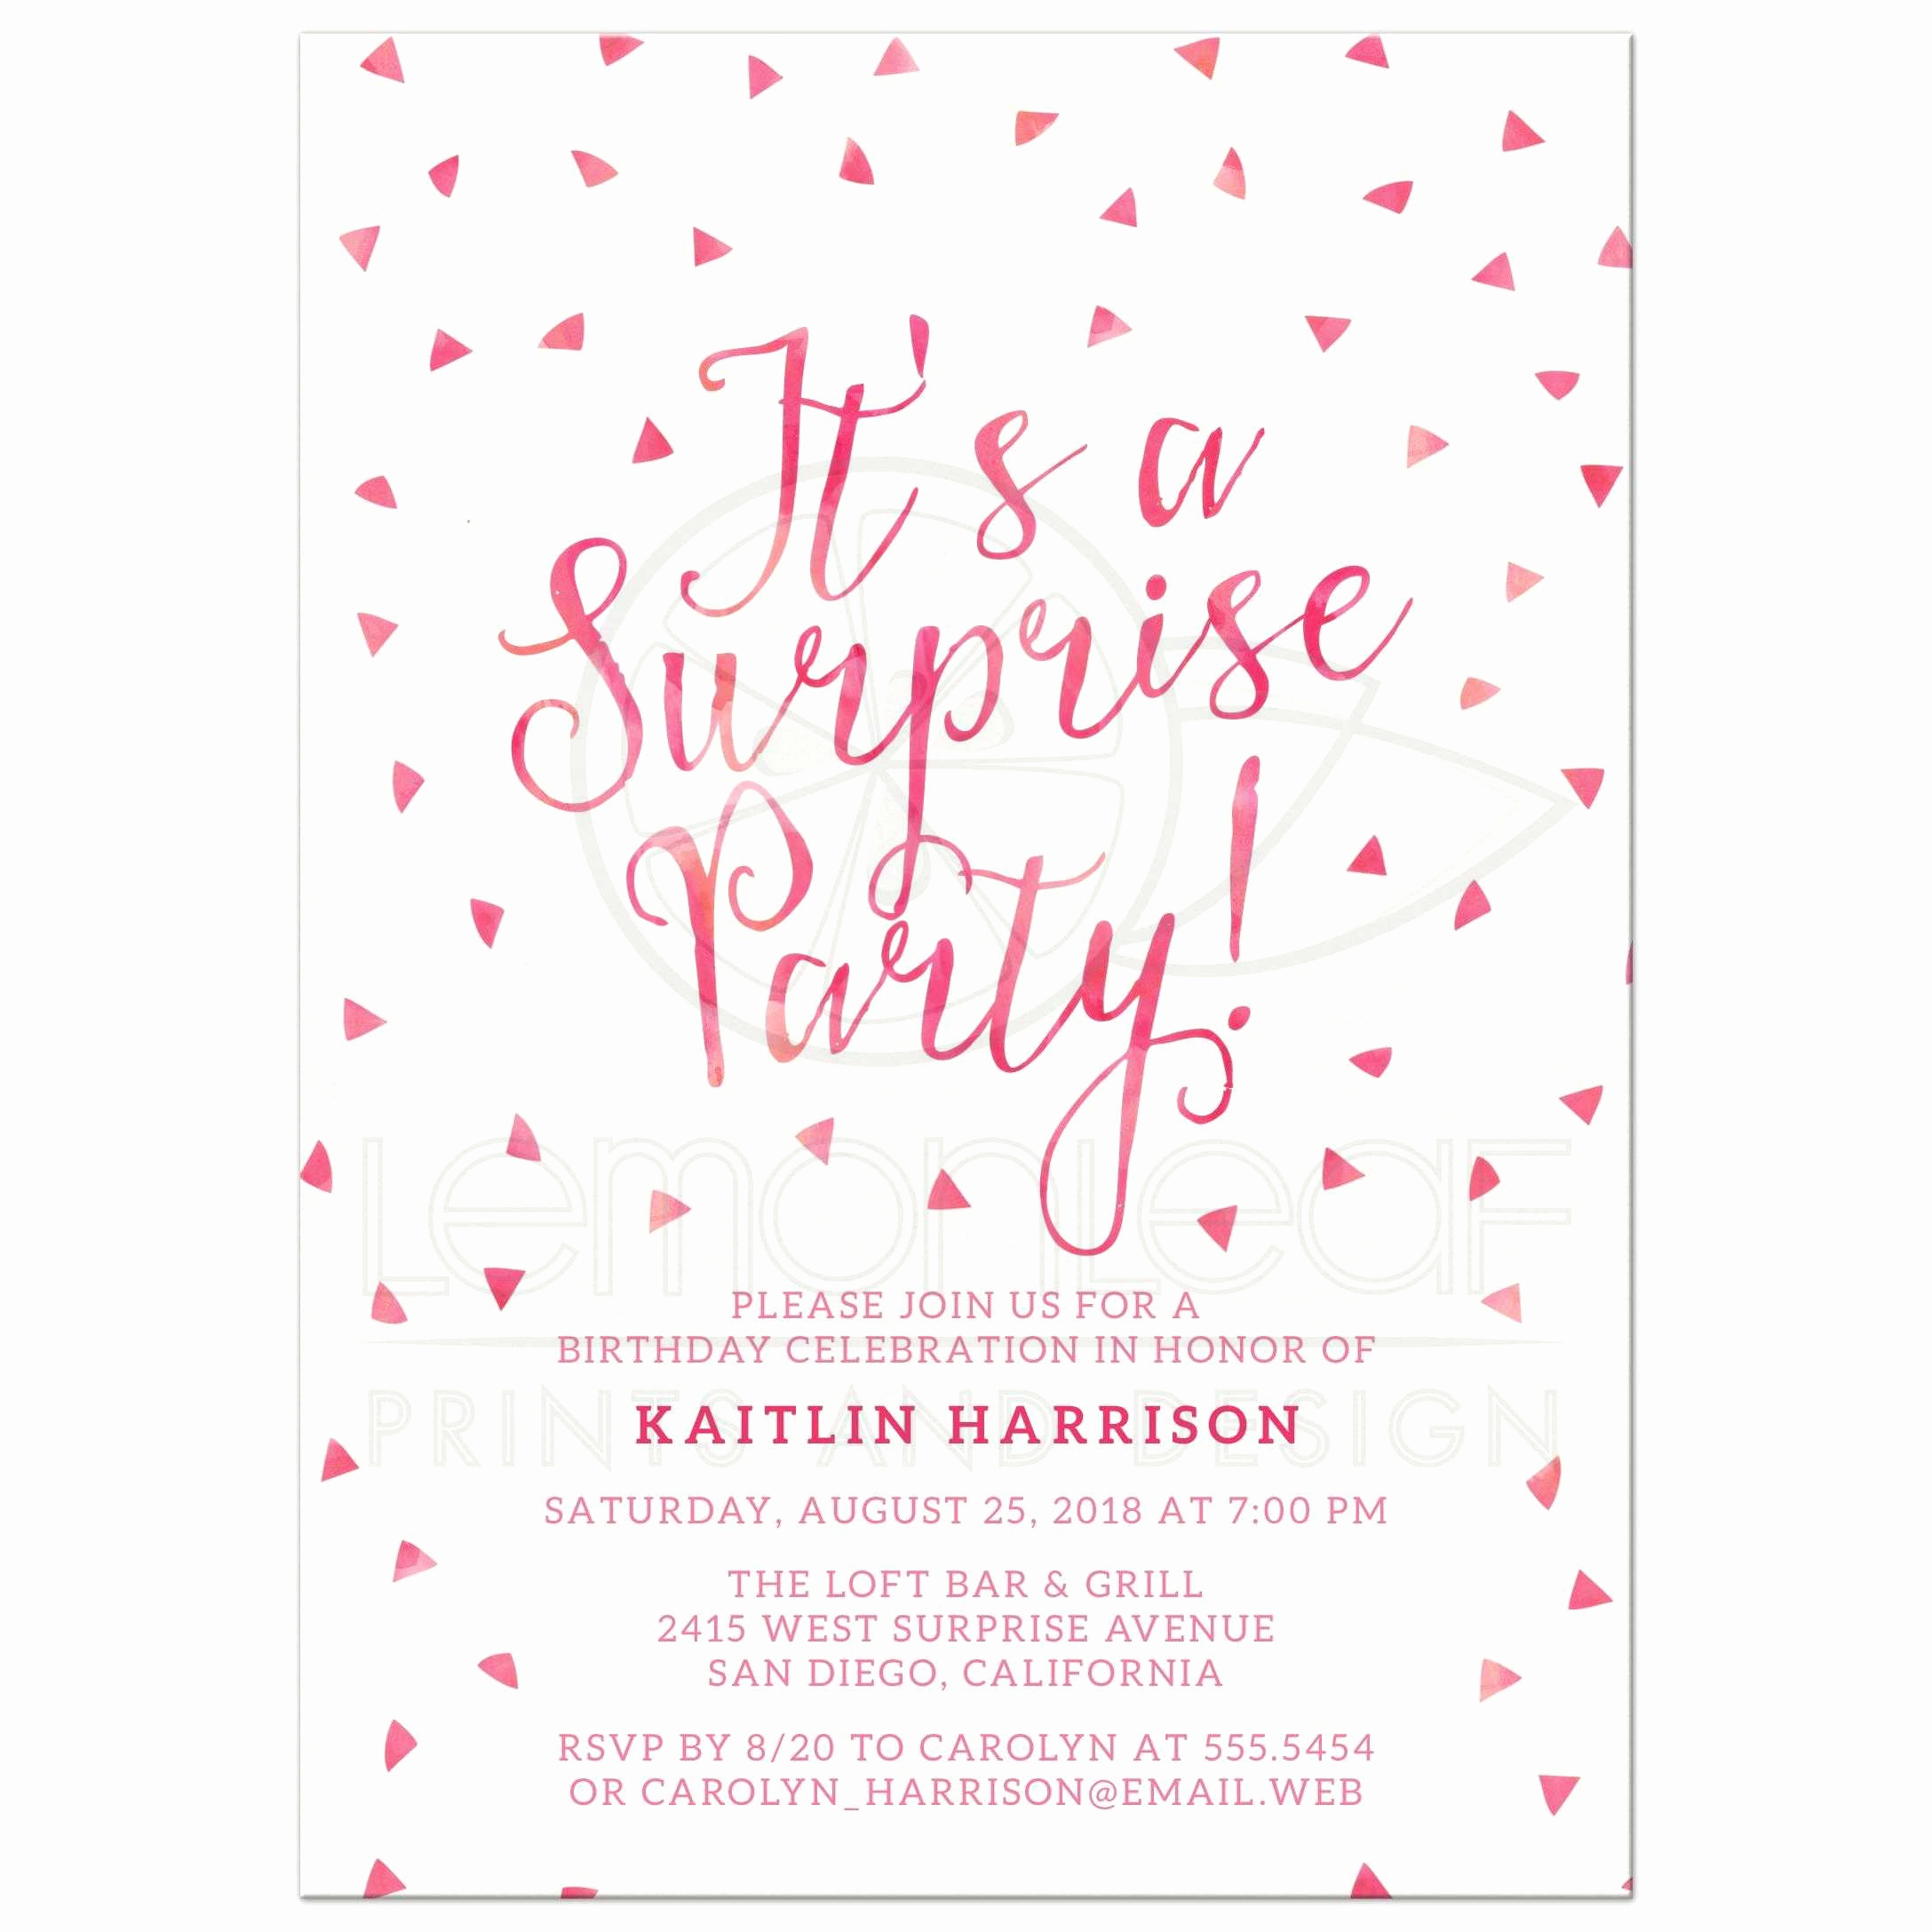 Suprise Party Invitation Wording Beautiful Surprise Birthday Party Invitations Pink Watercolor